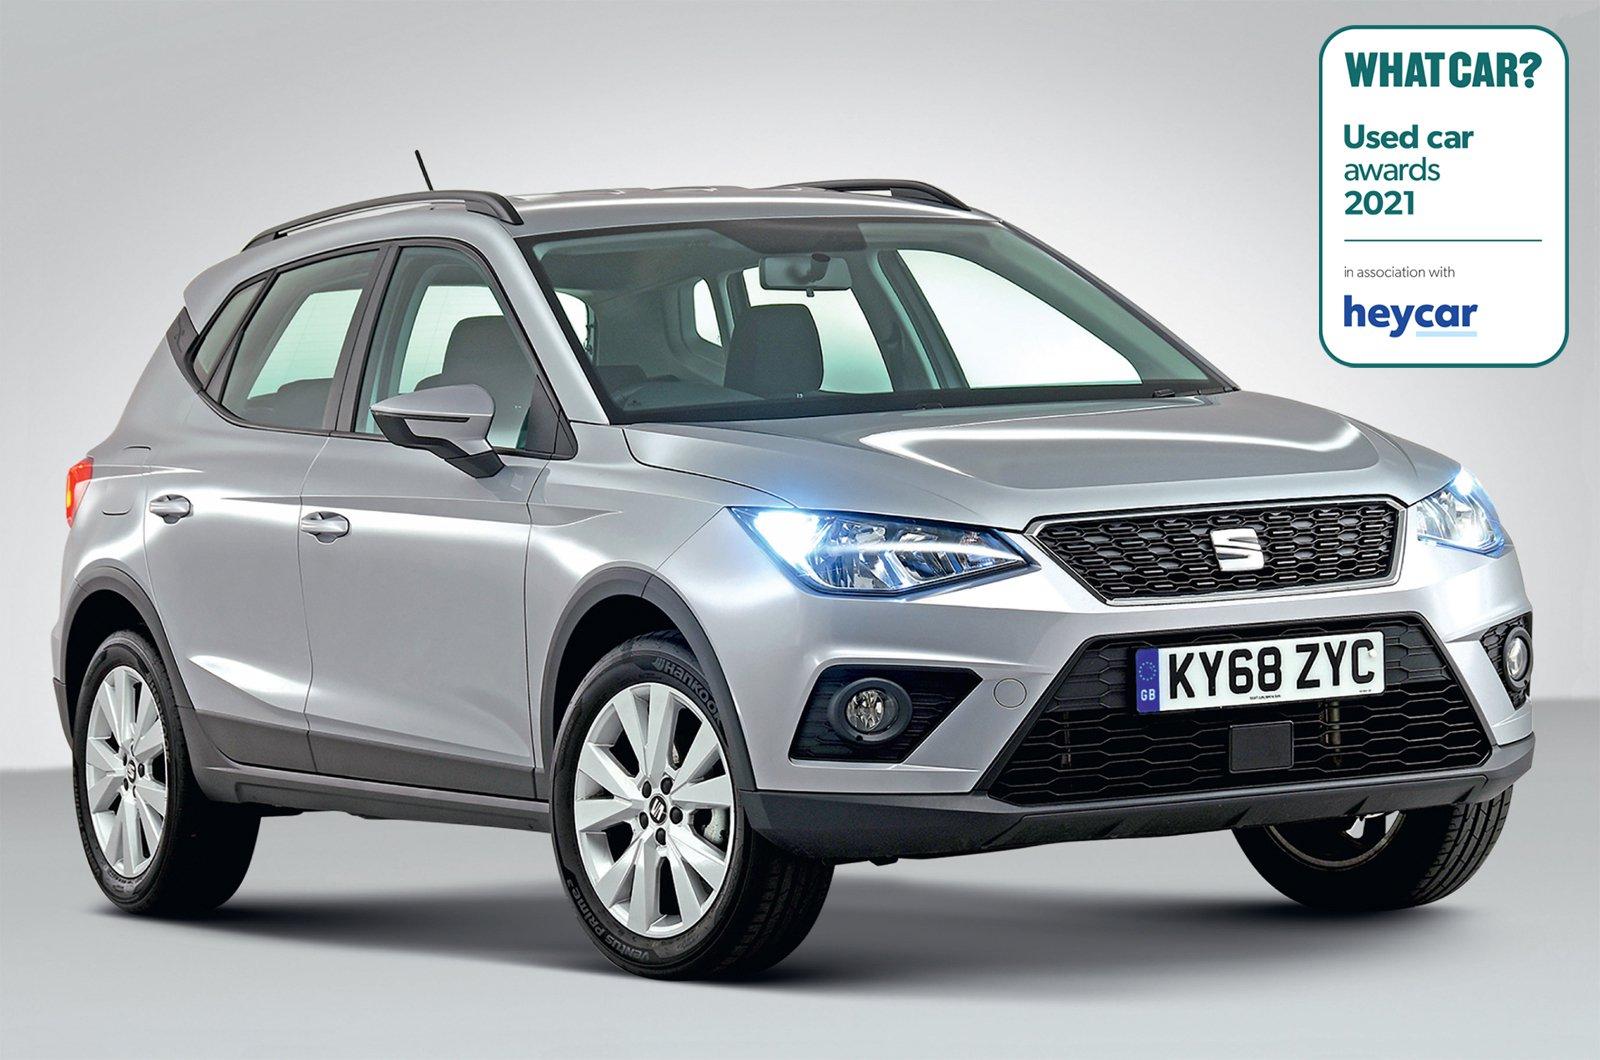 Used Car Awards 2021 - Seat Arona